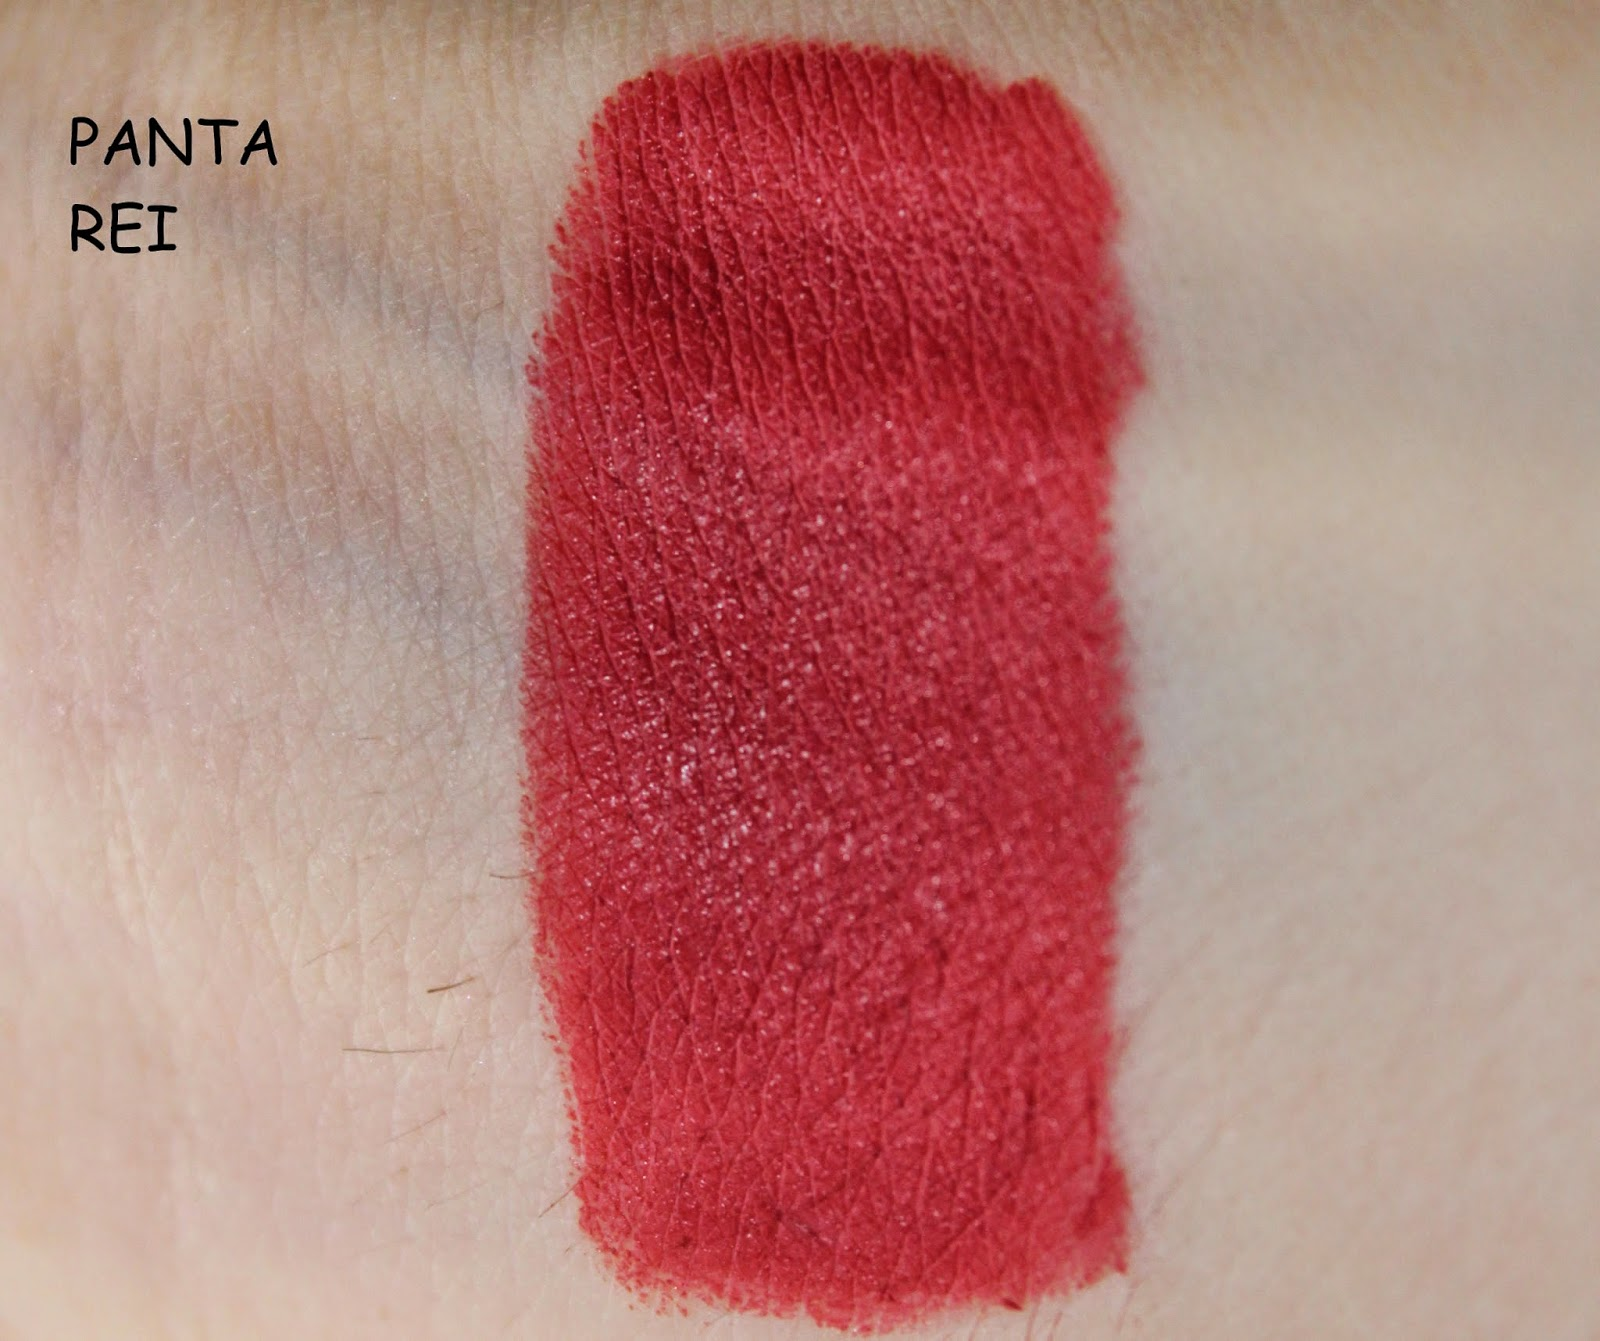 NABLA DIVA CRIME: SWATCHES